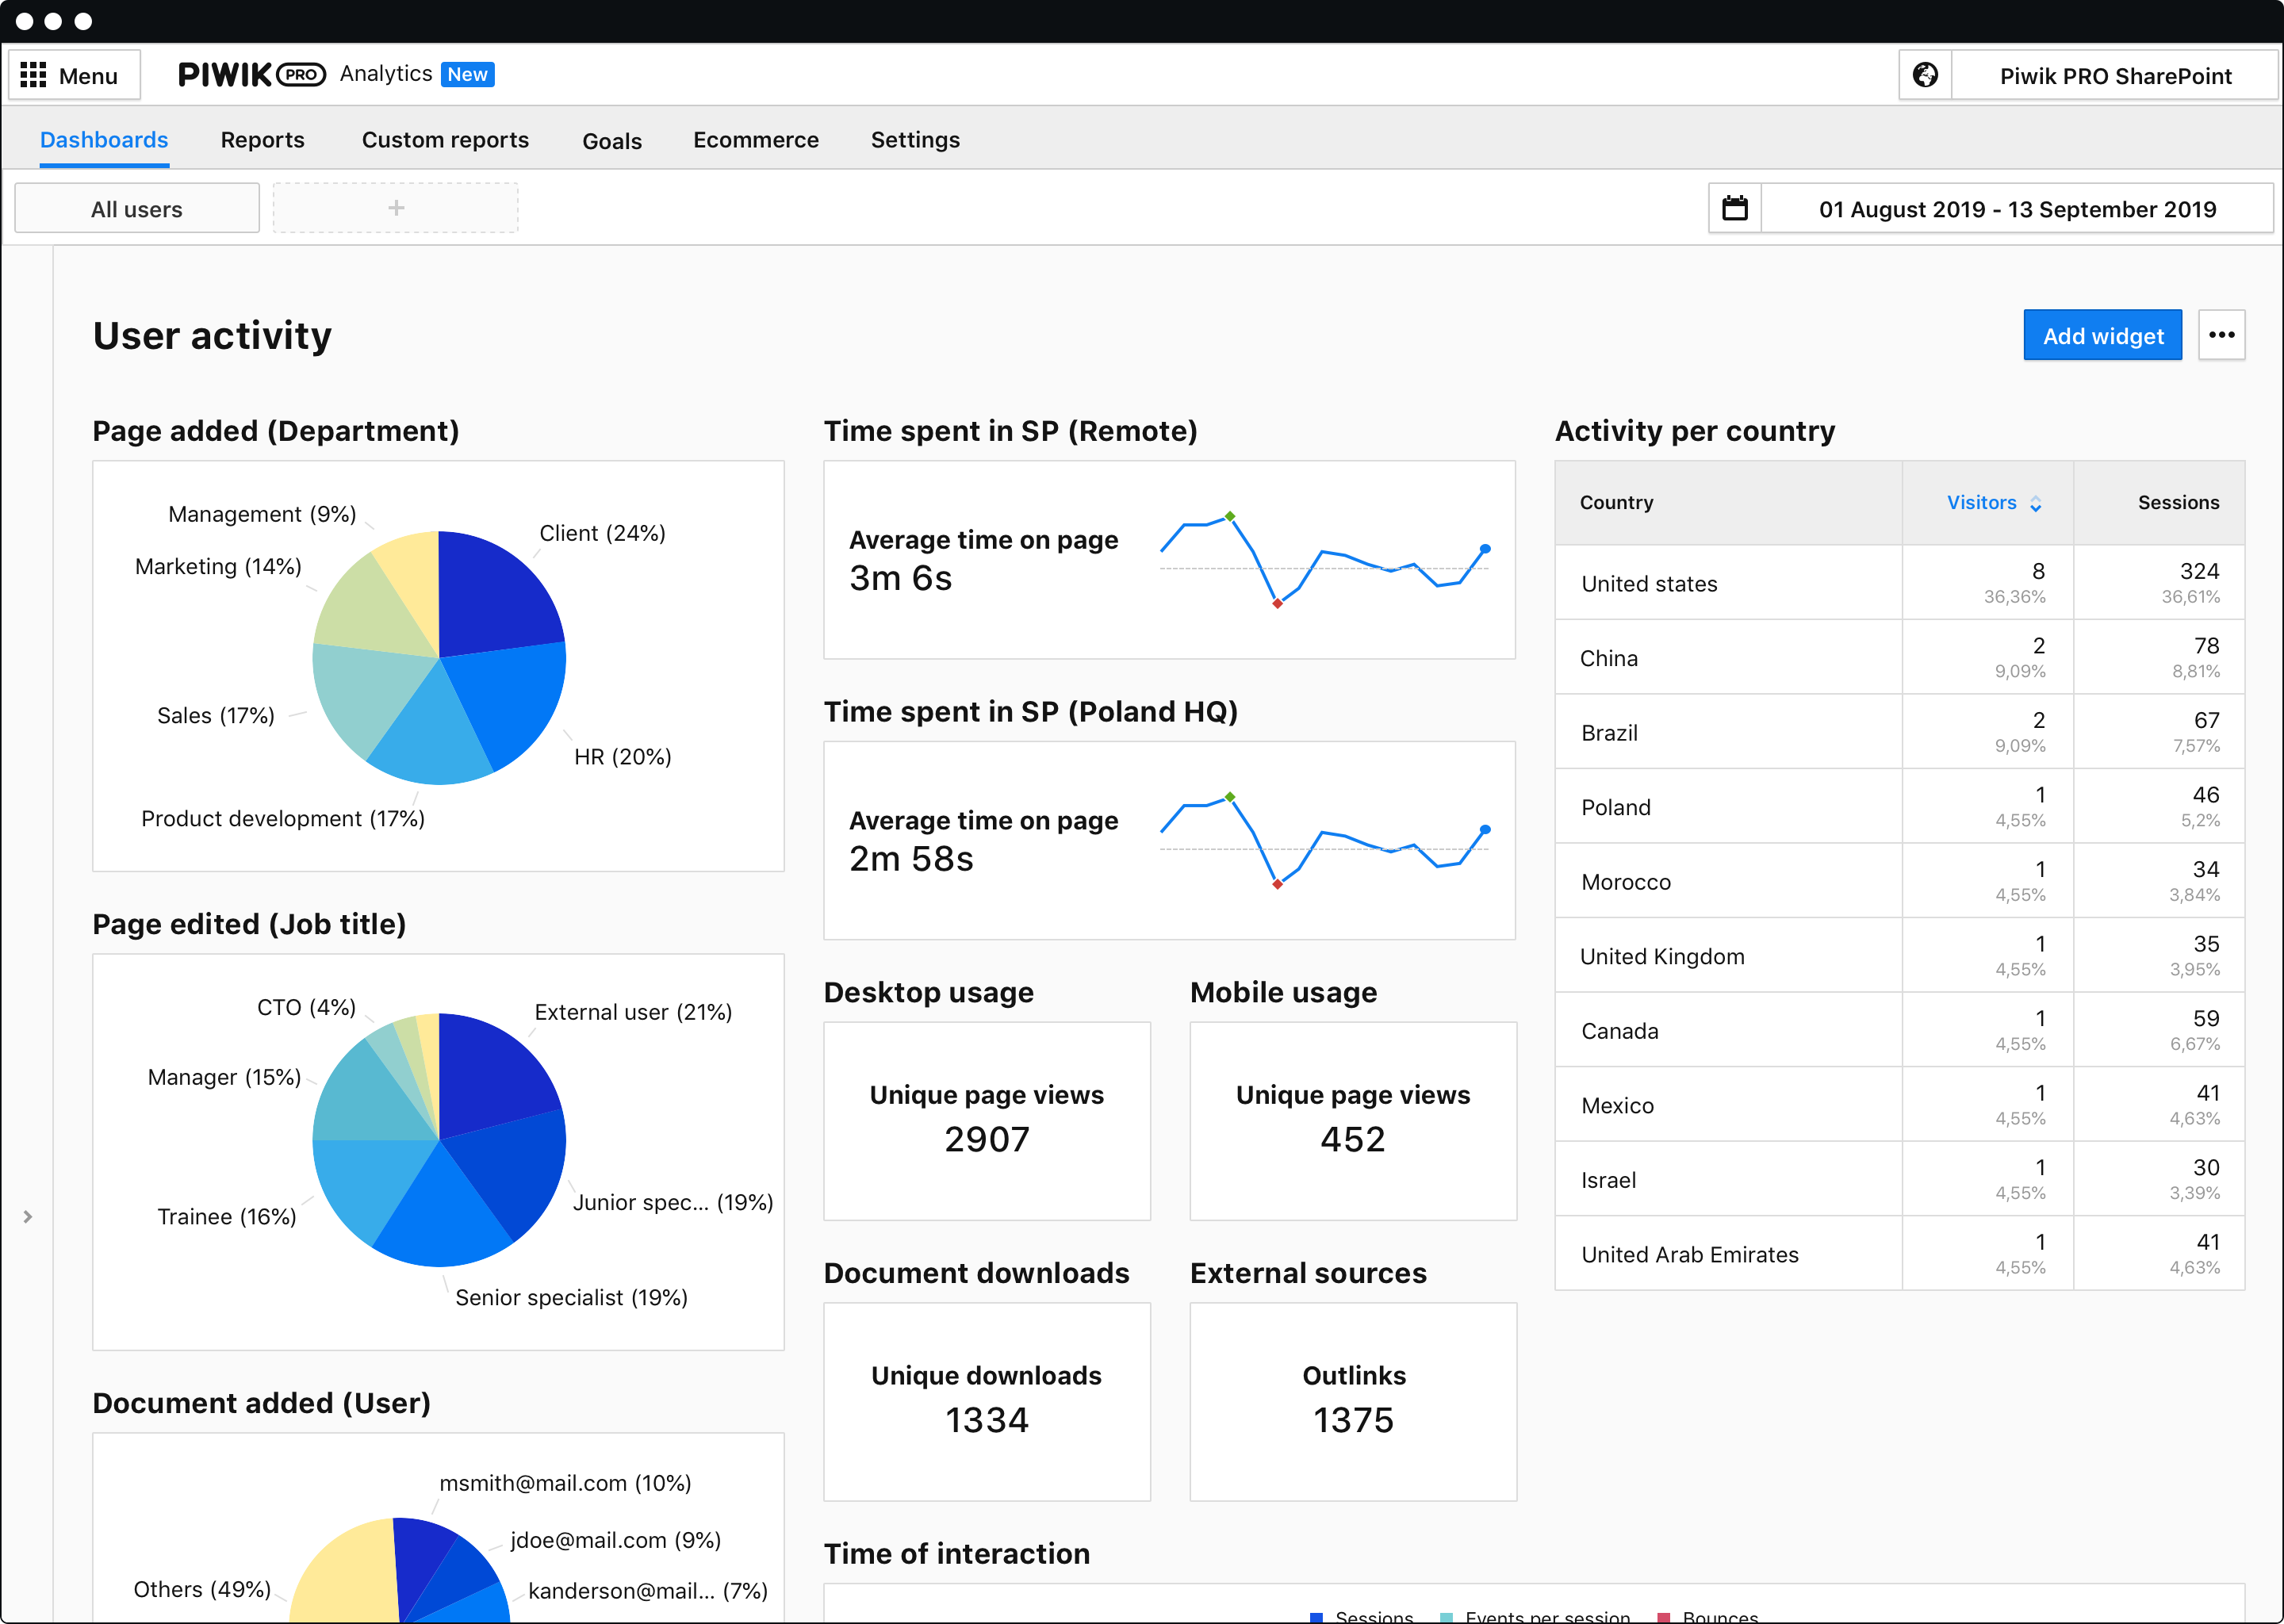 SharePoint analytics - Dashboard